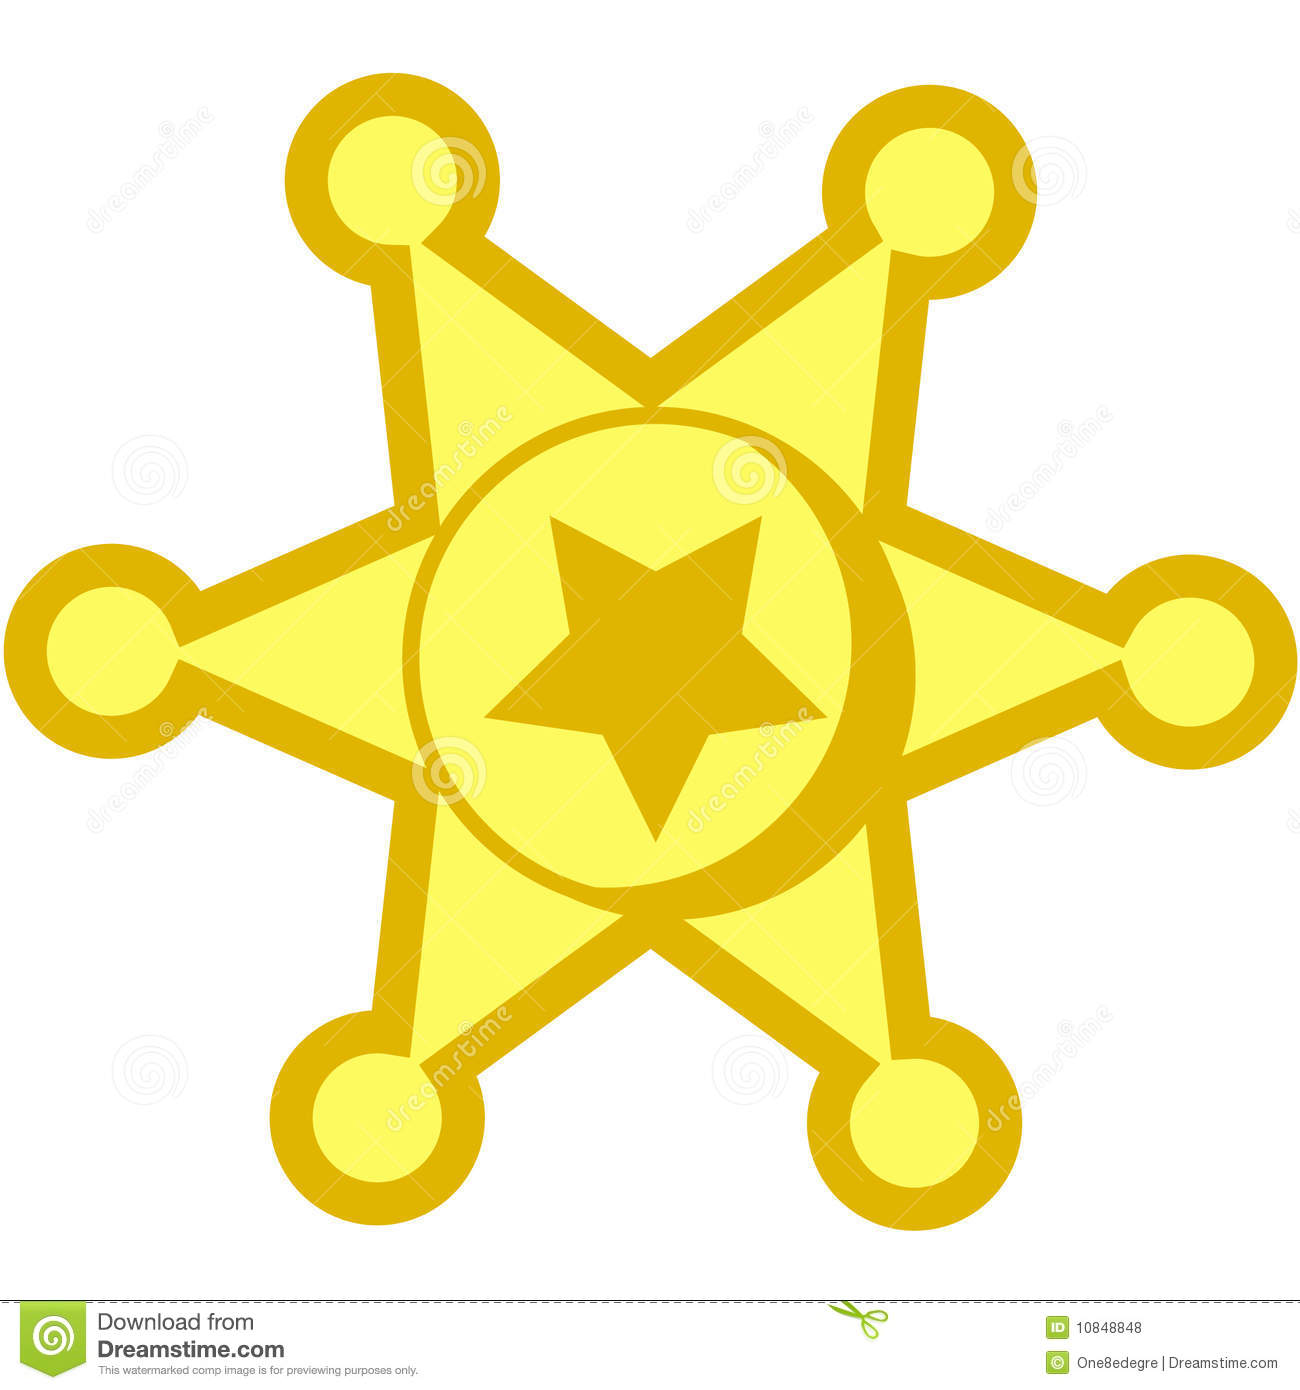 Cowboy Star Badge Royalty Free Stock Photos - Image: 10848848